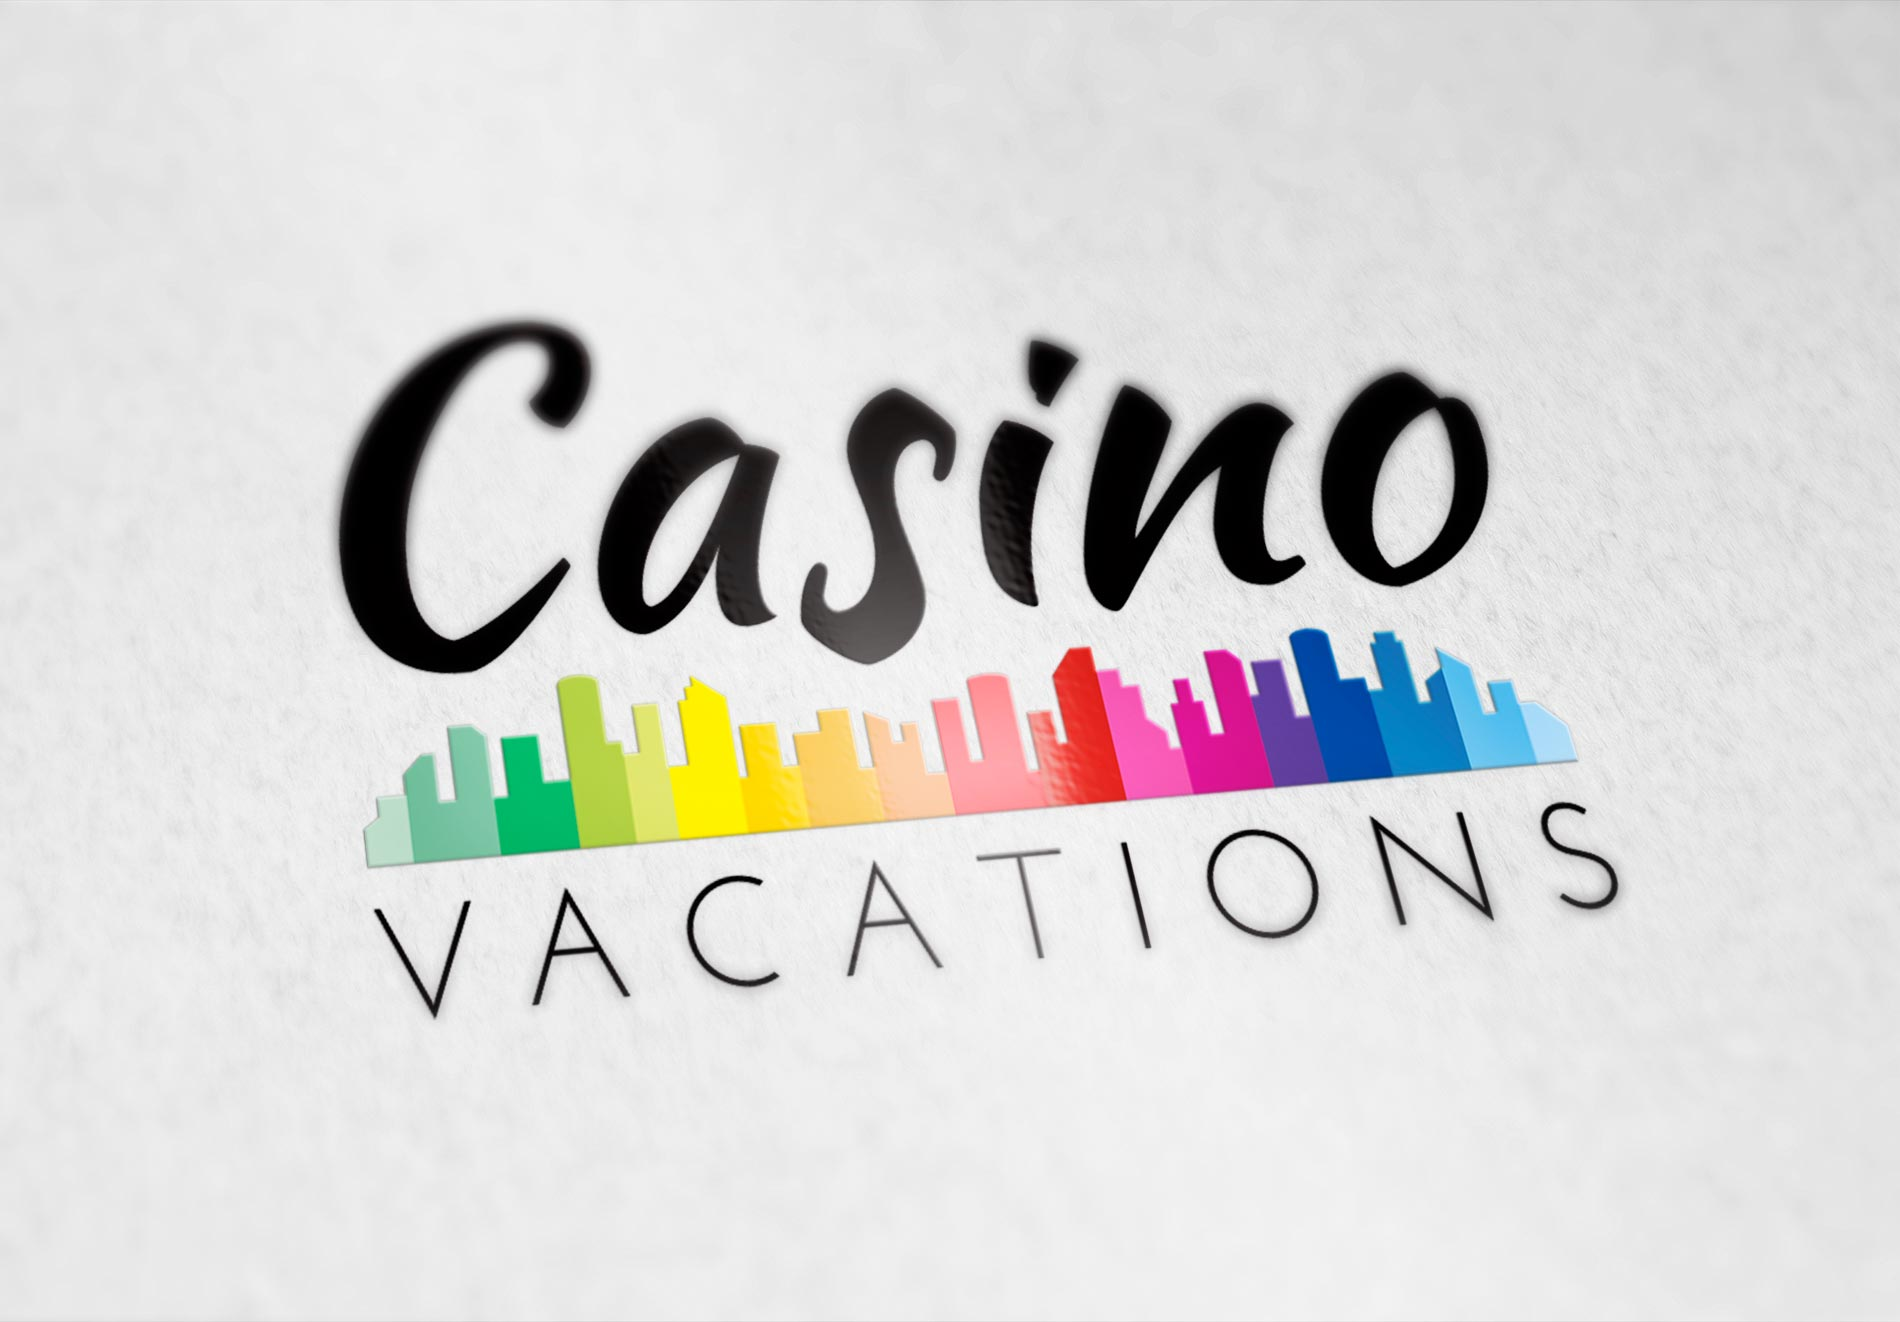 Casino Vacations